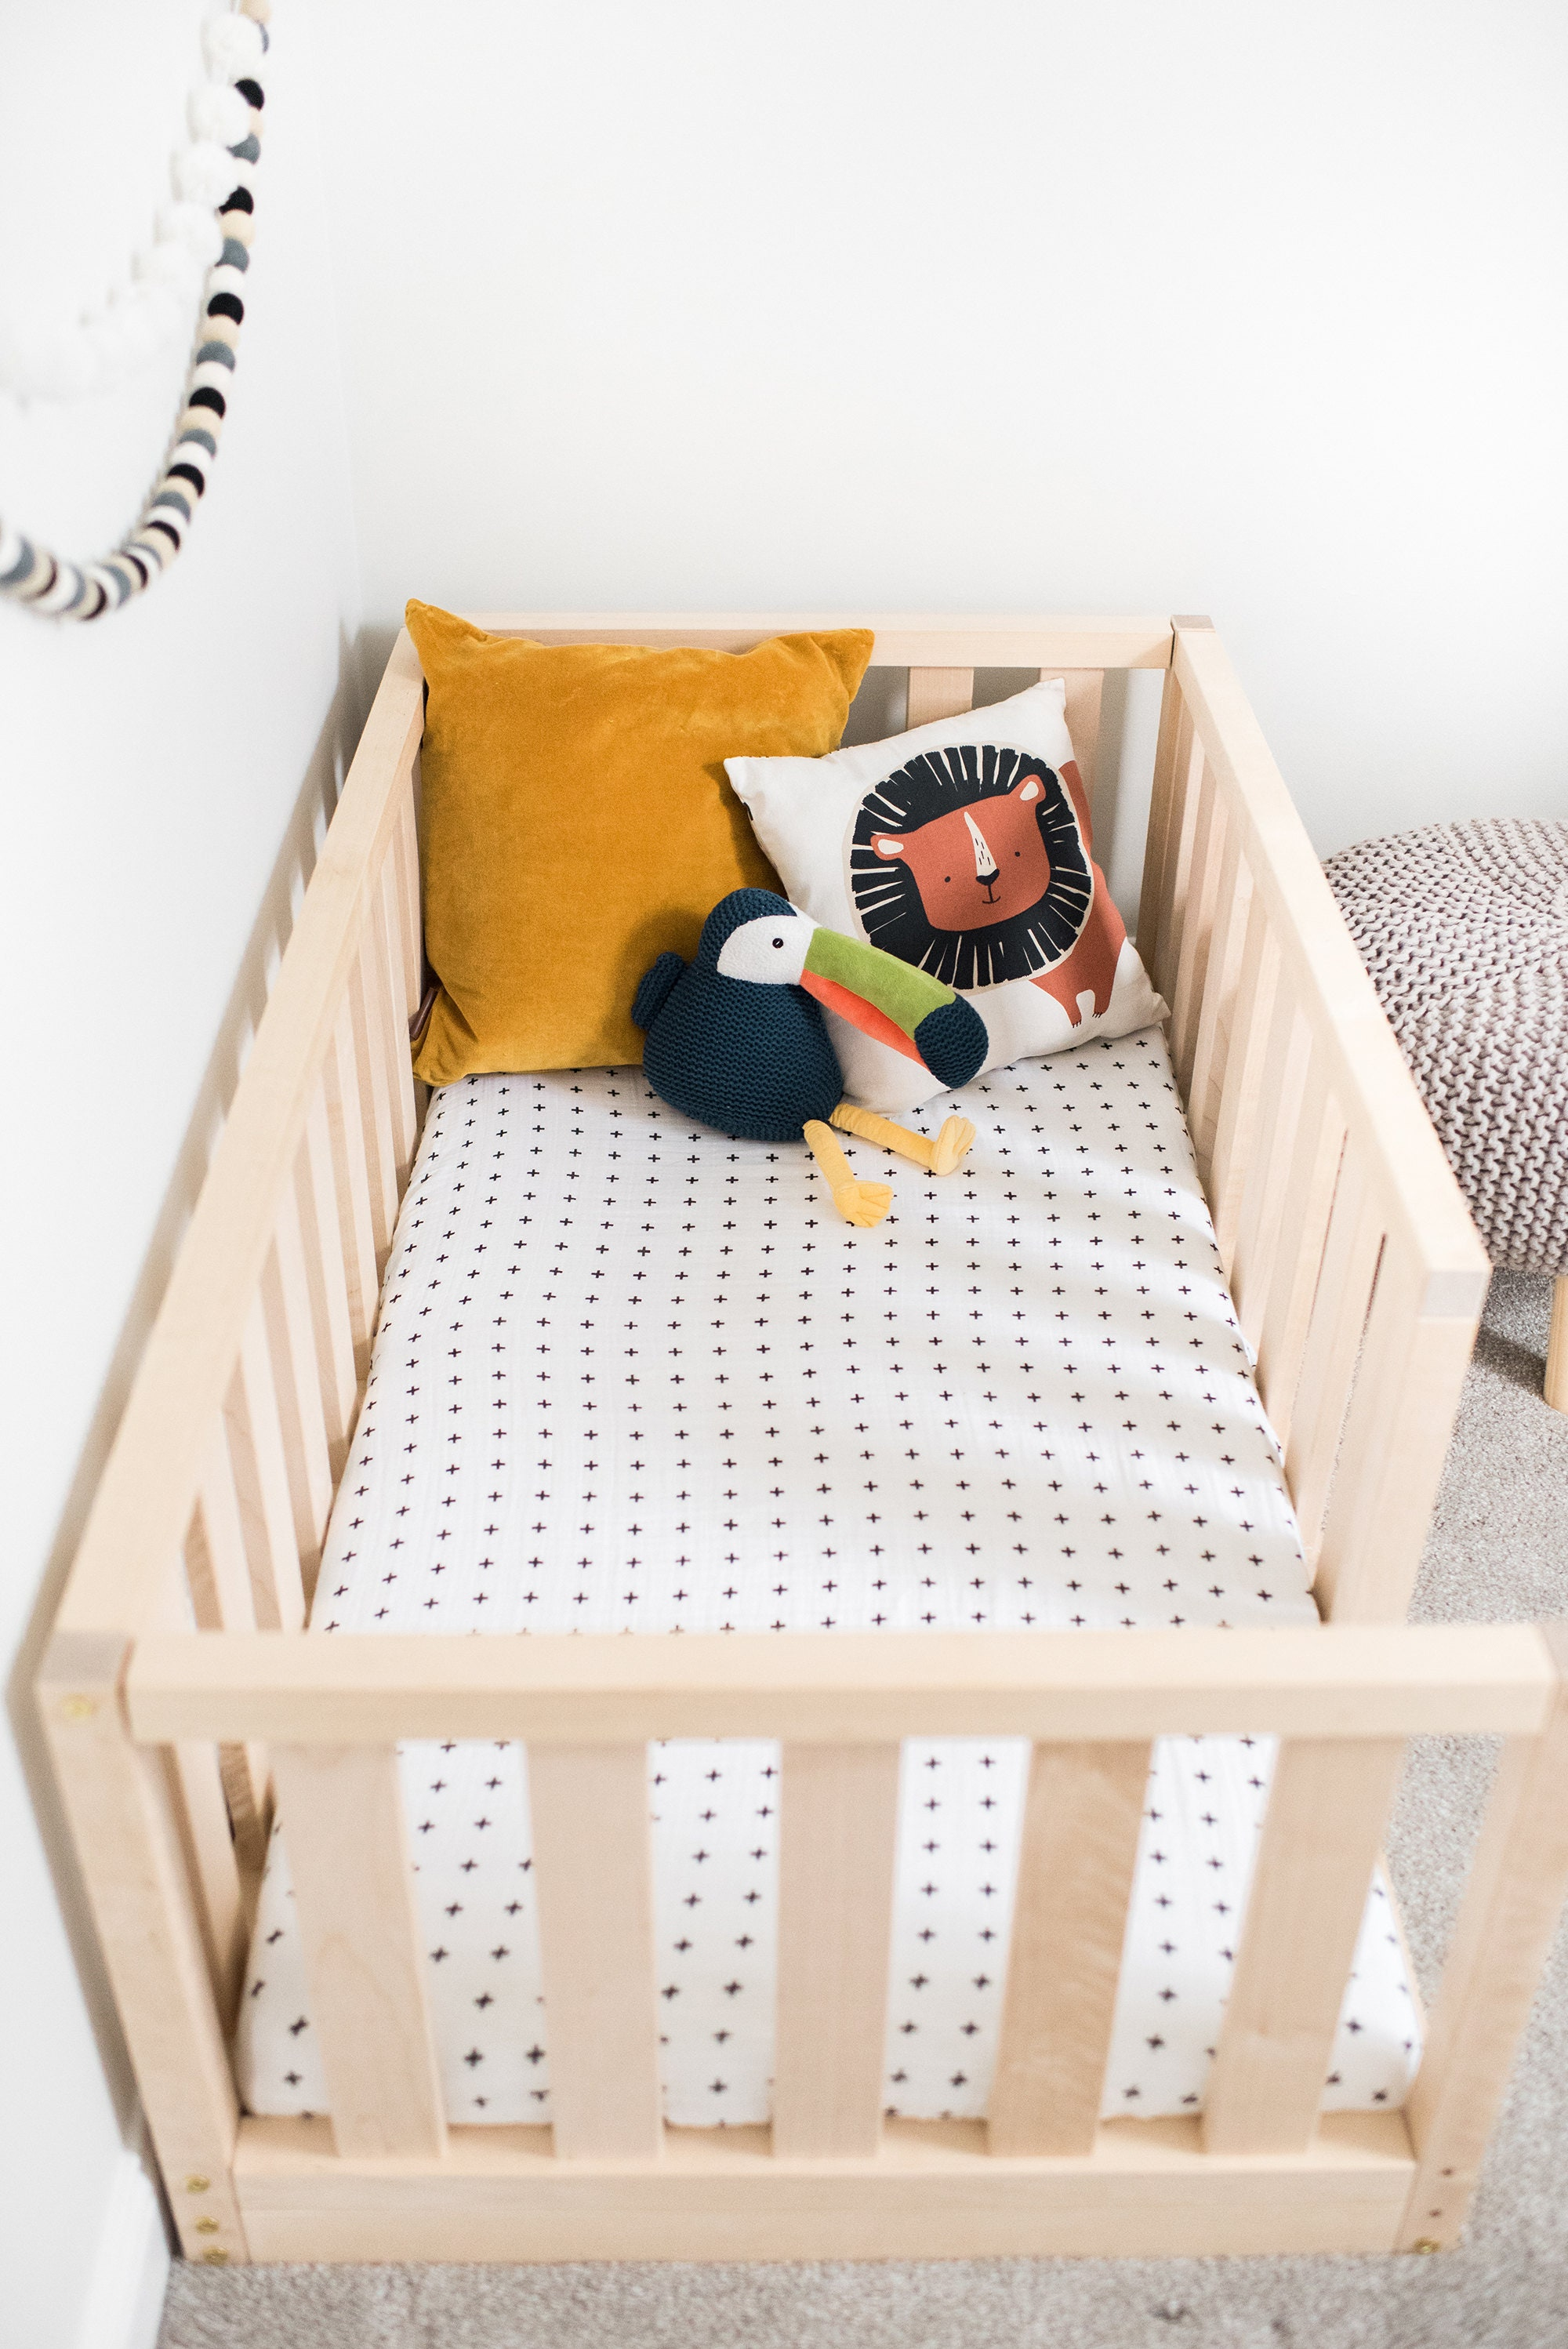 Durable New Us Crib Size Toddler Bed Play Bed Frame Children Bed Bunk Bed Wood Floor Bed Wooden Bed Wood Montessori Bed Gift Bed Frame